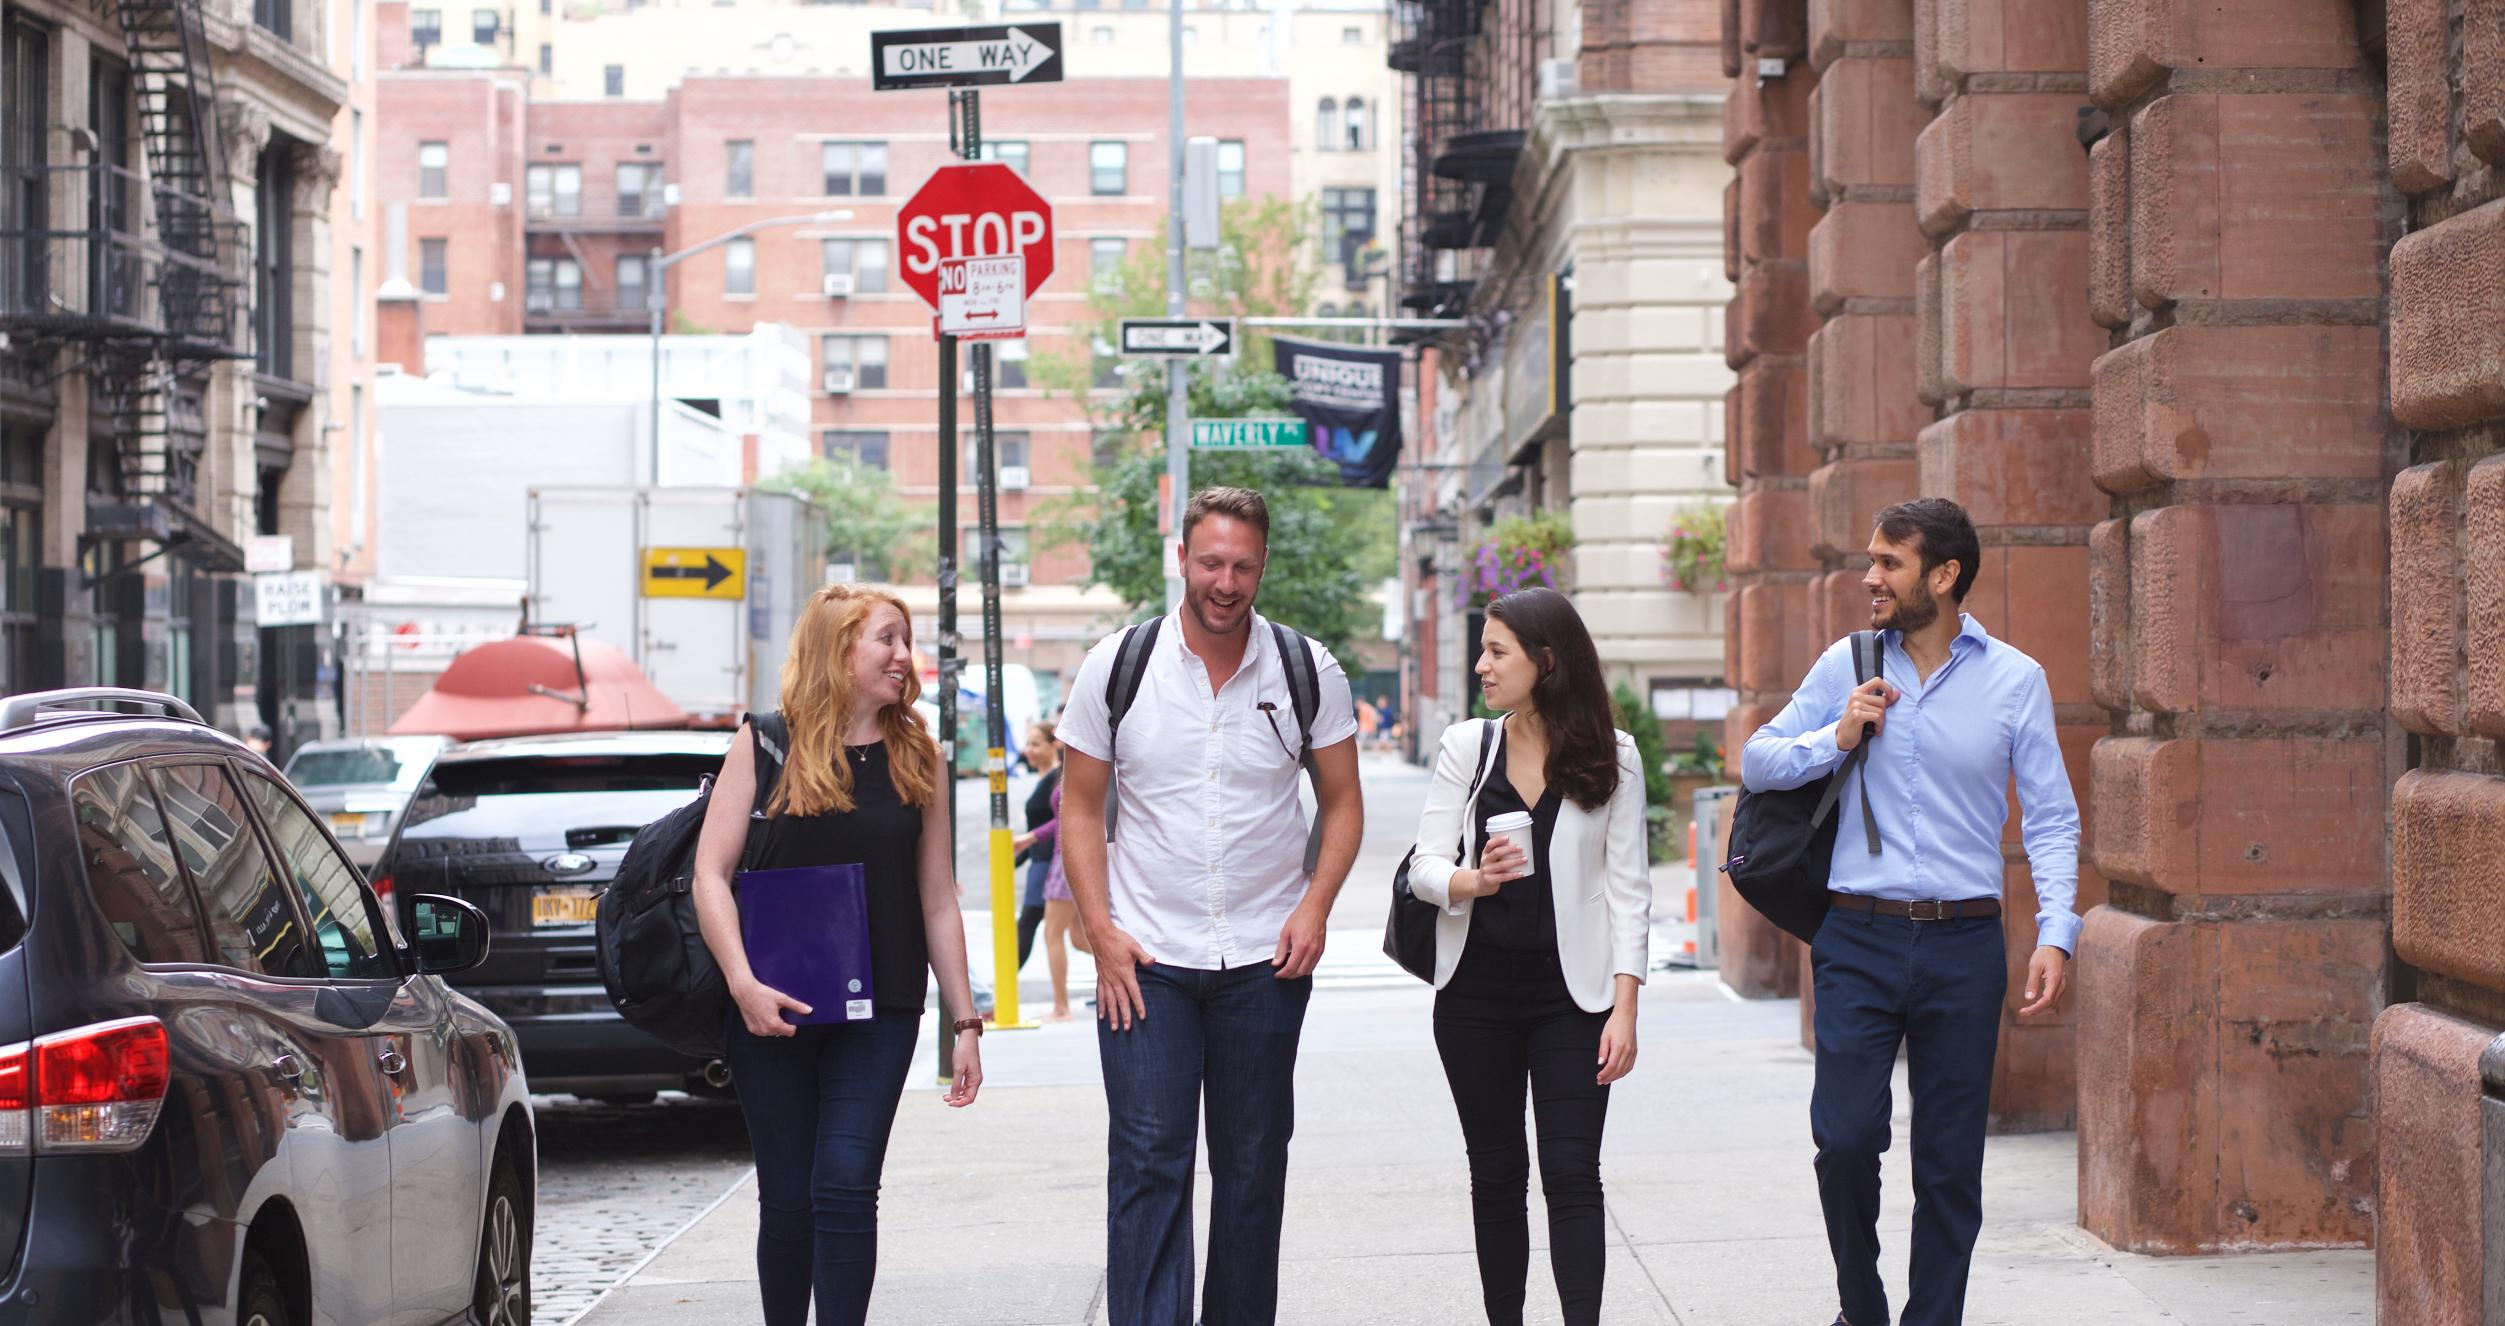 Four people walking down the street